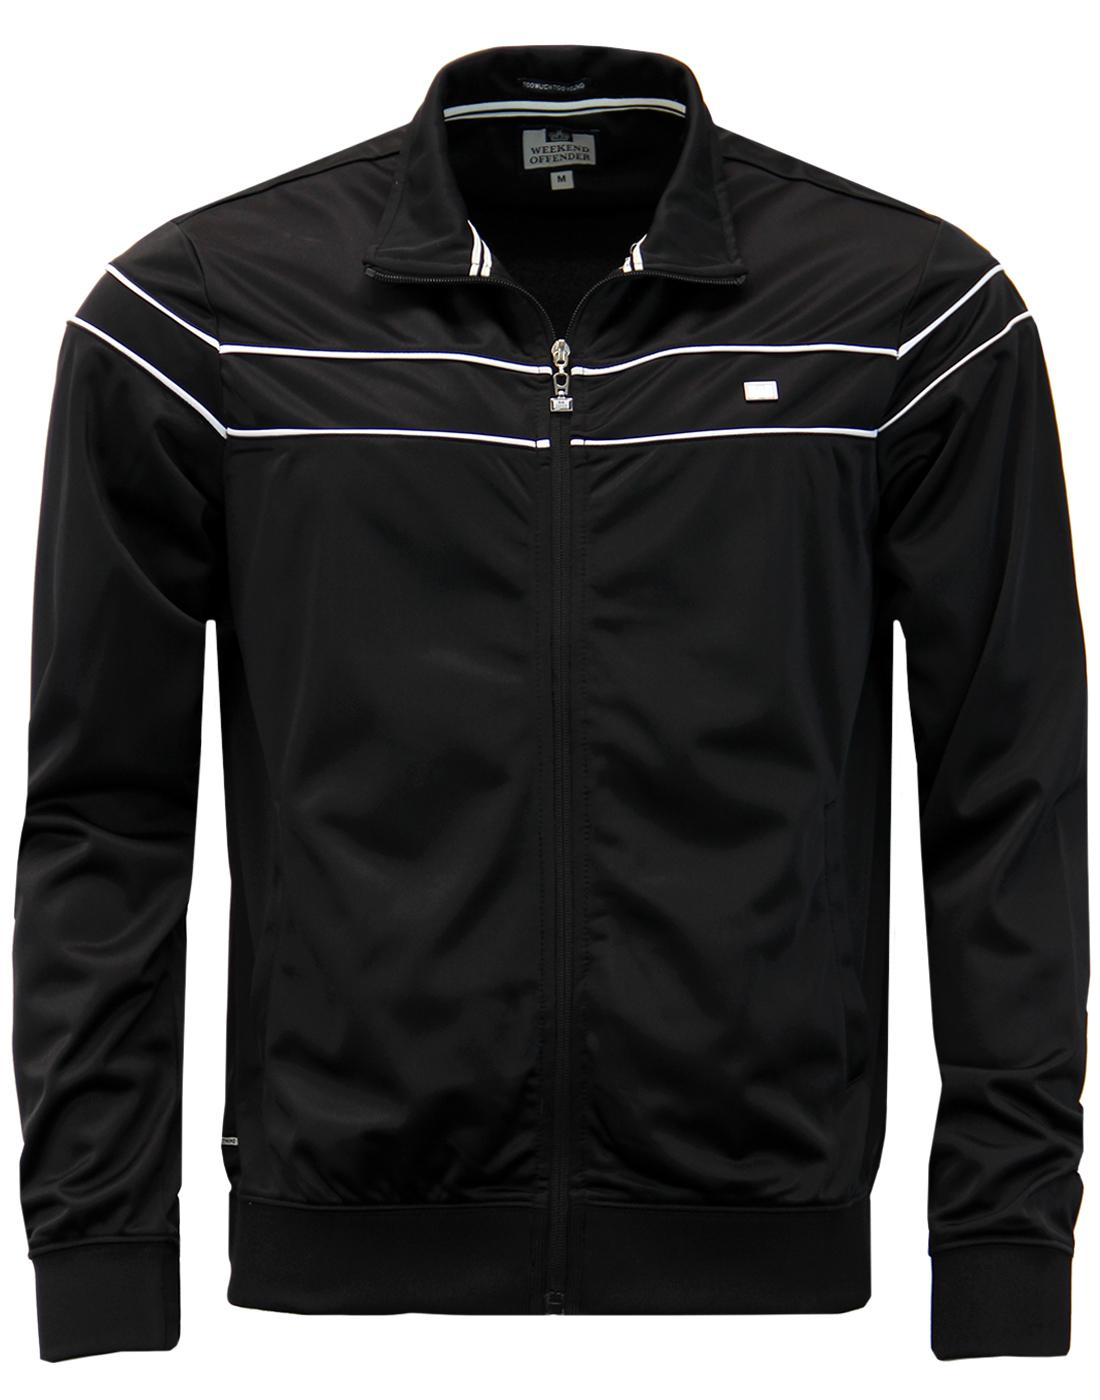 Renot WEEKEND OFFENDER Mod Casuals Black Track Top